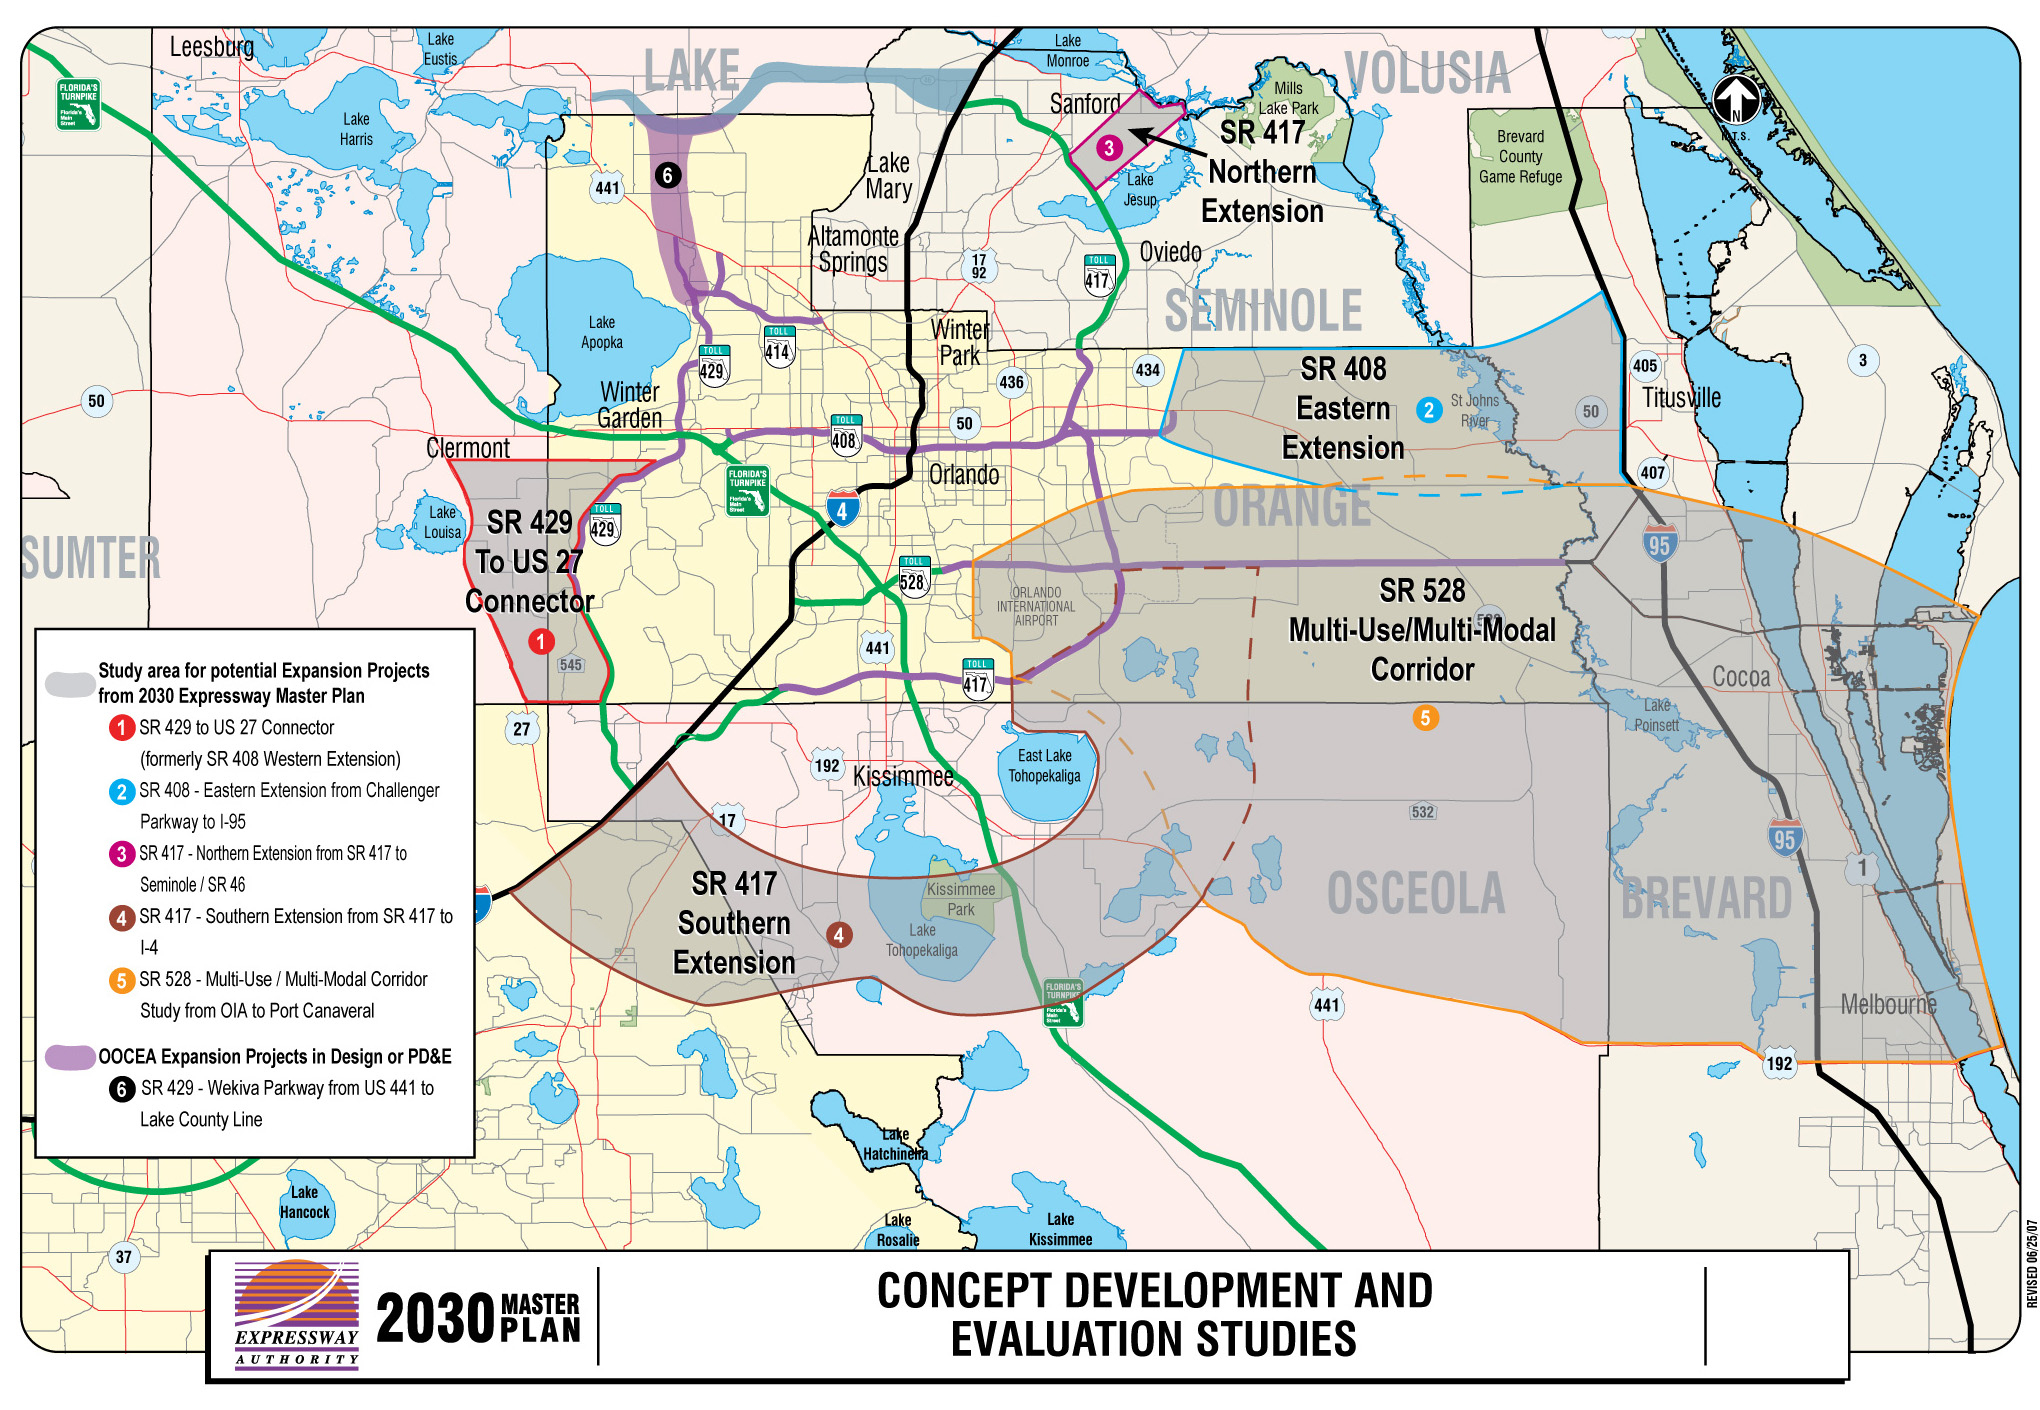 Road Maps Of Orlando And Travel Information | Download Free Road - Road Map To Orlando Florida